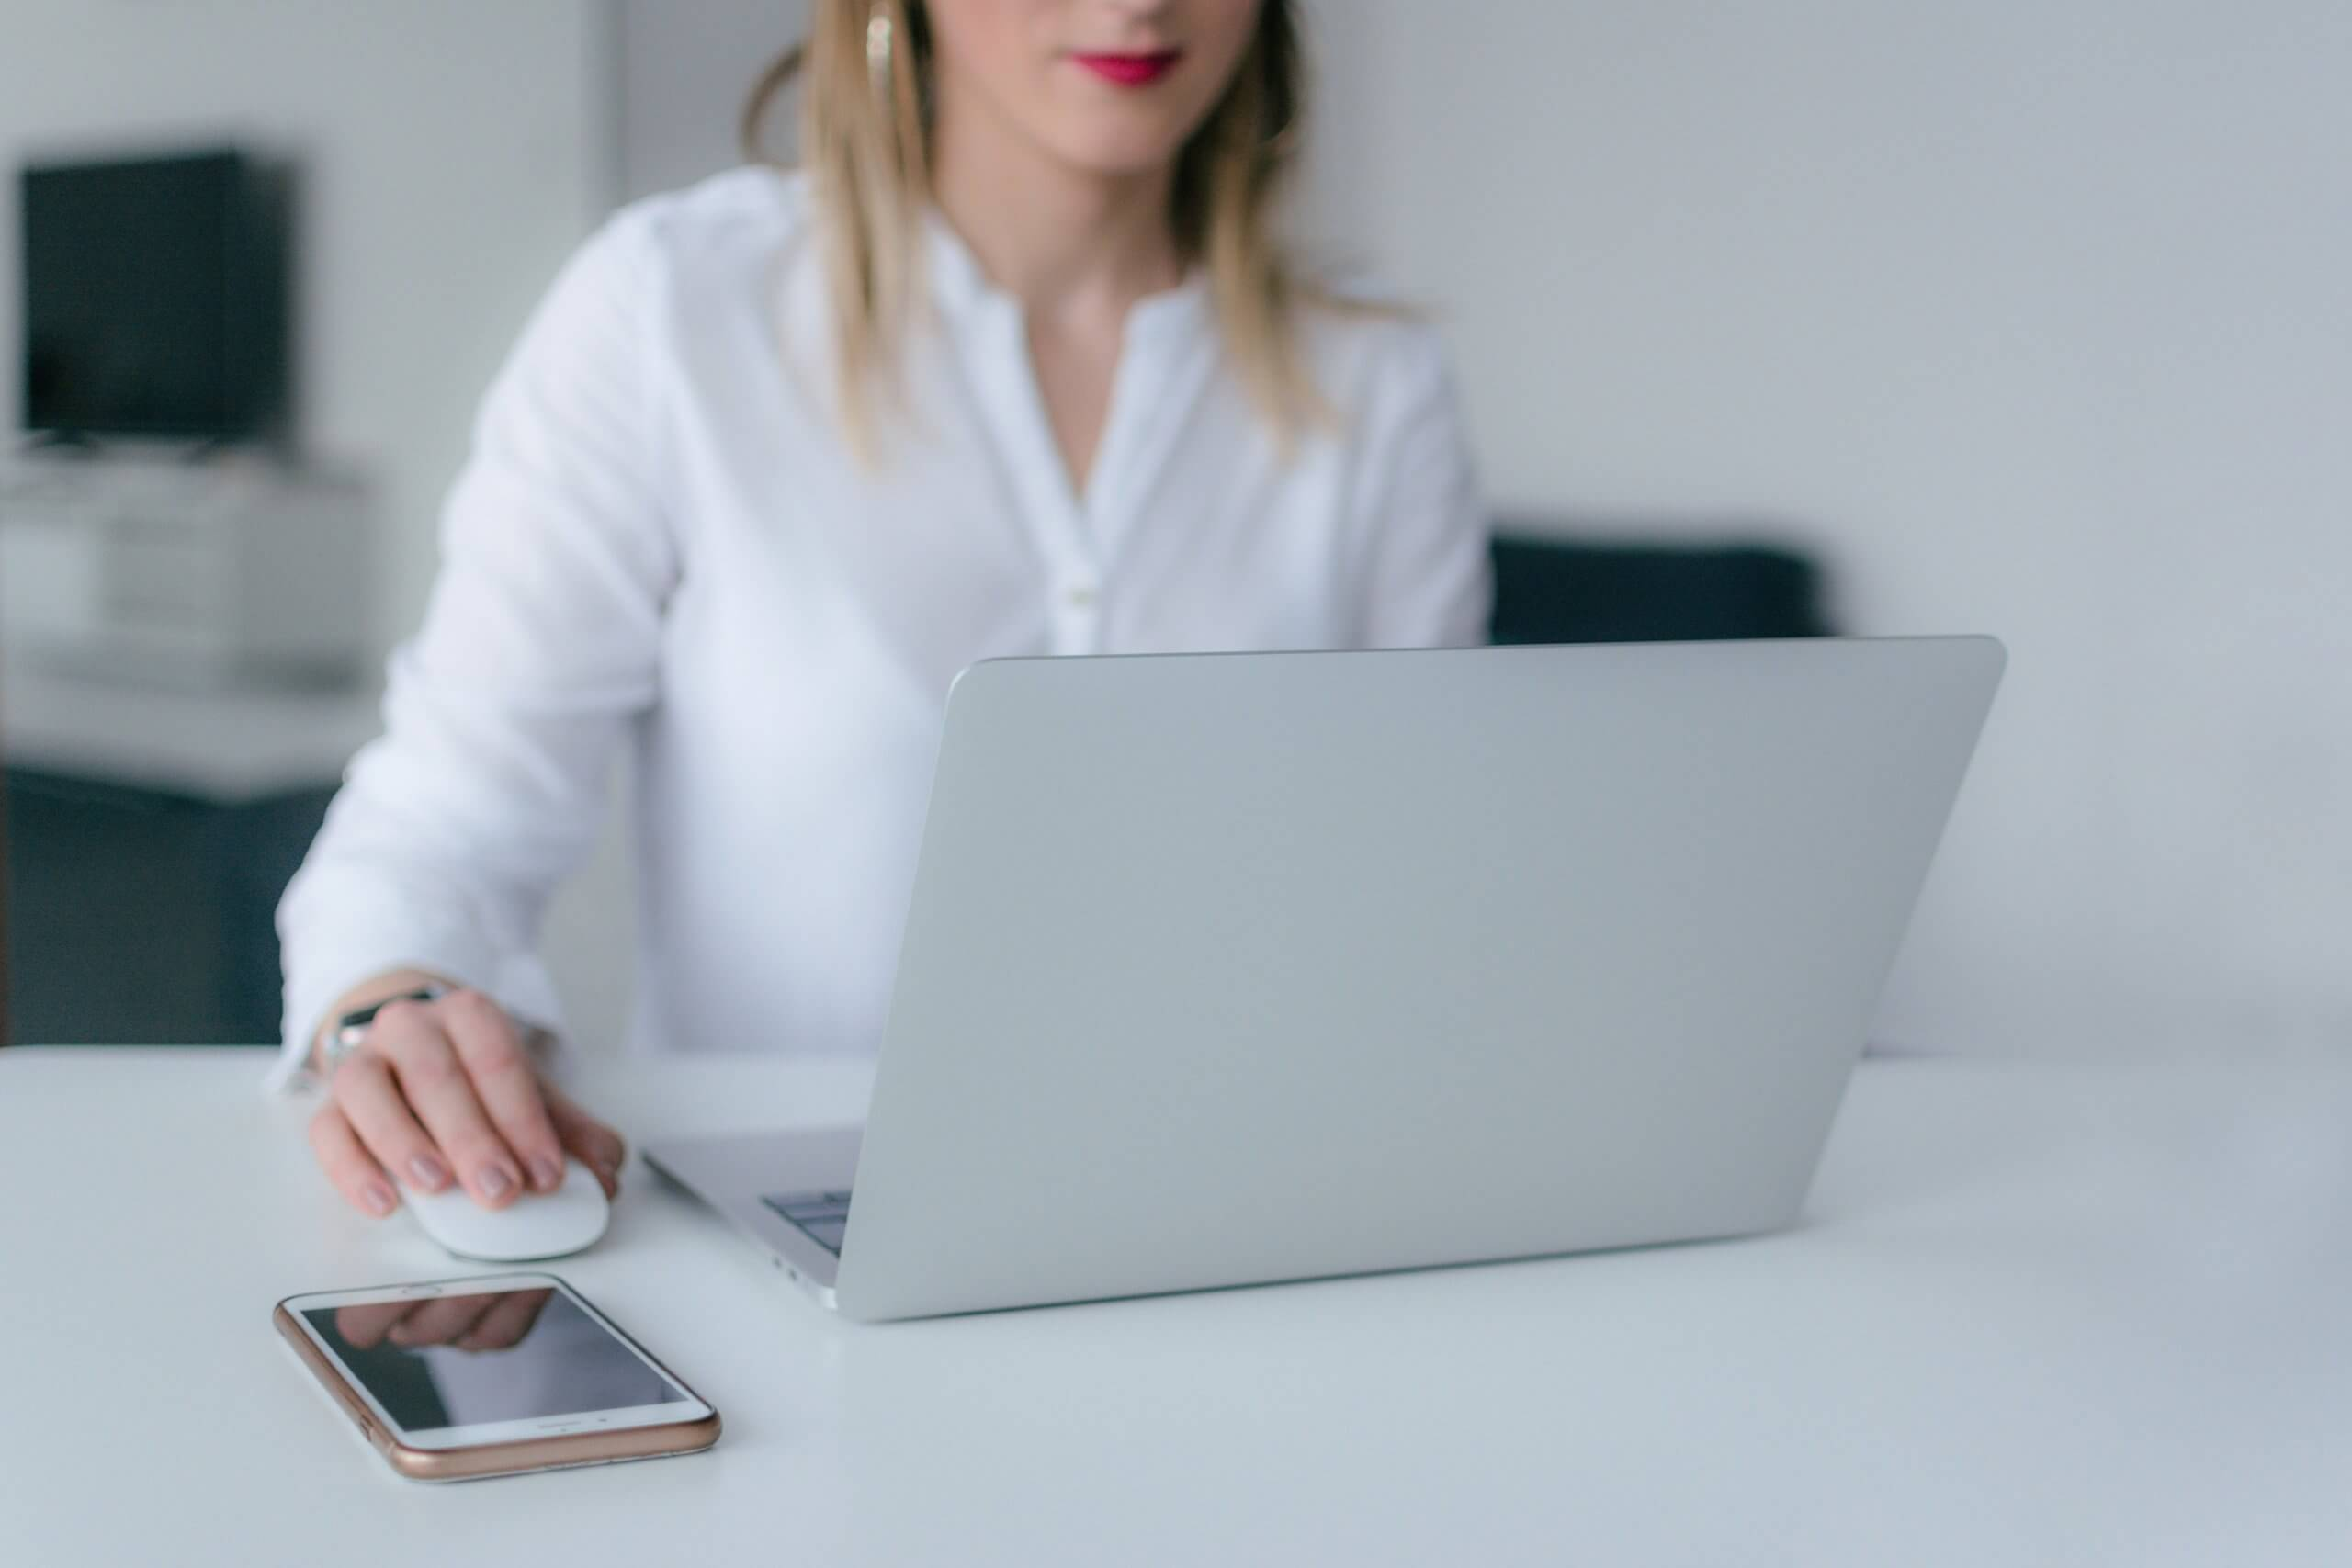 woman using a laptop at a desk